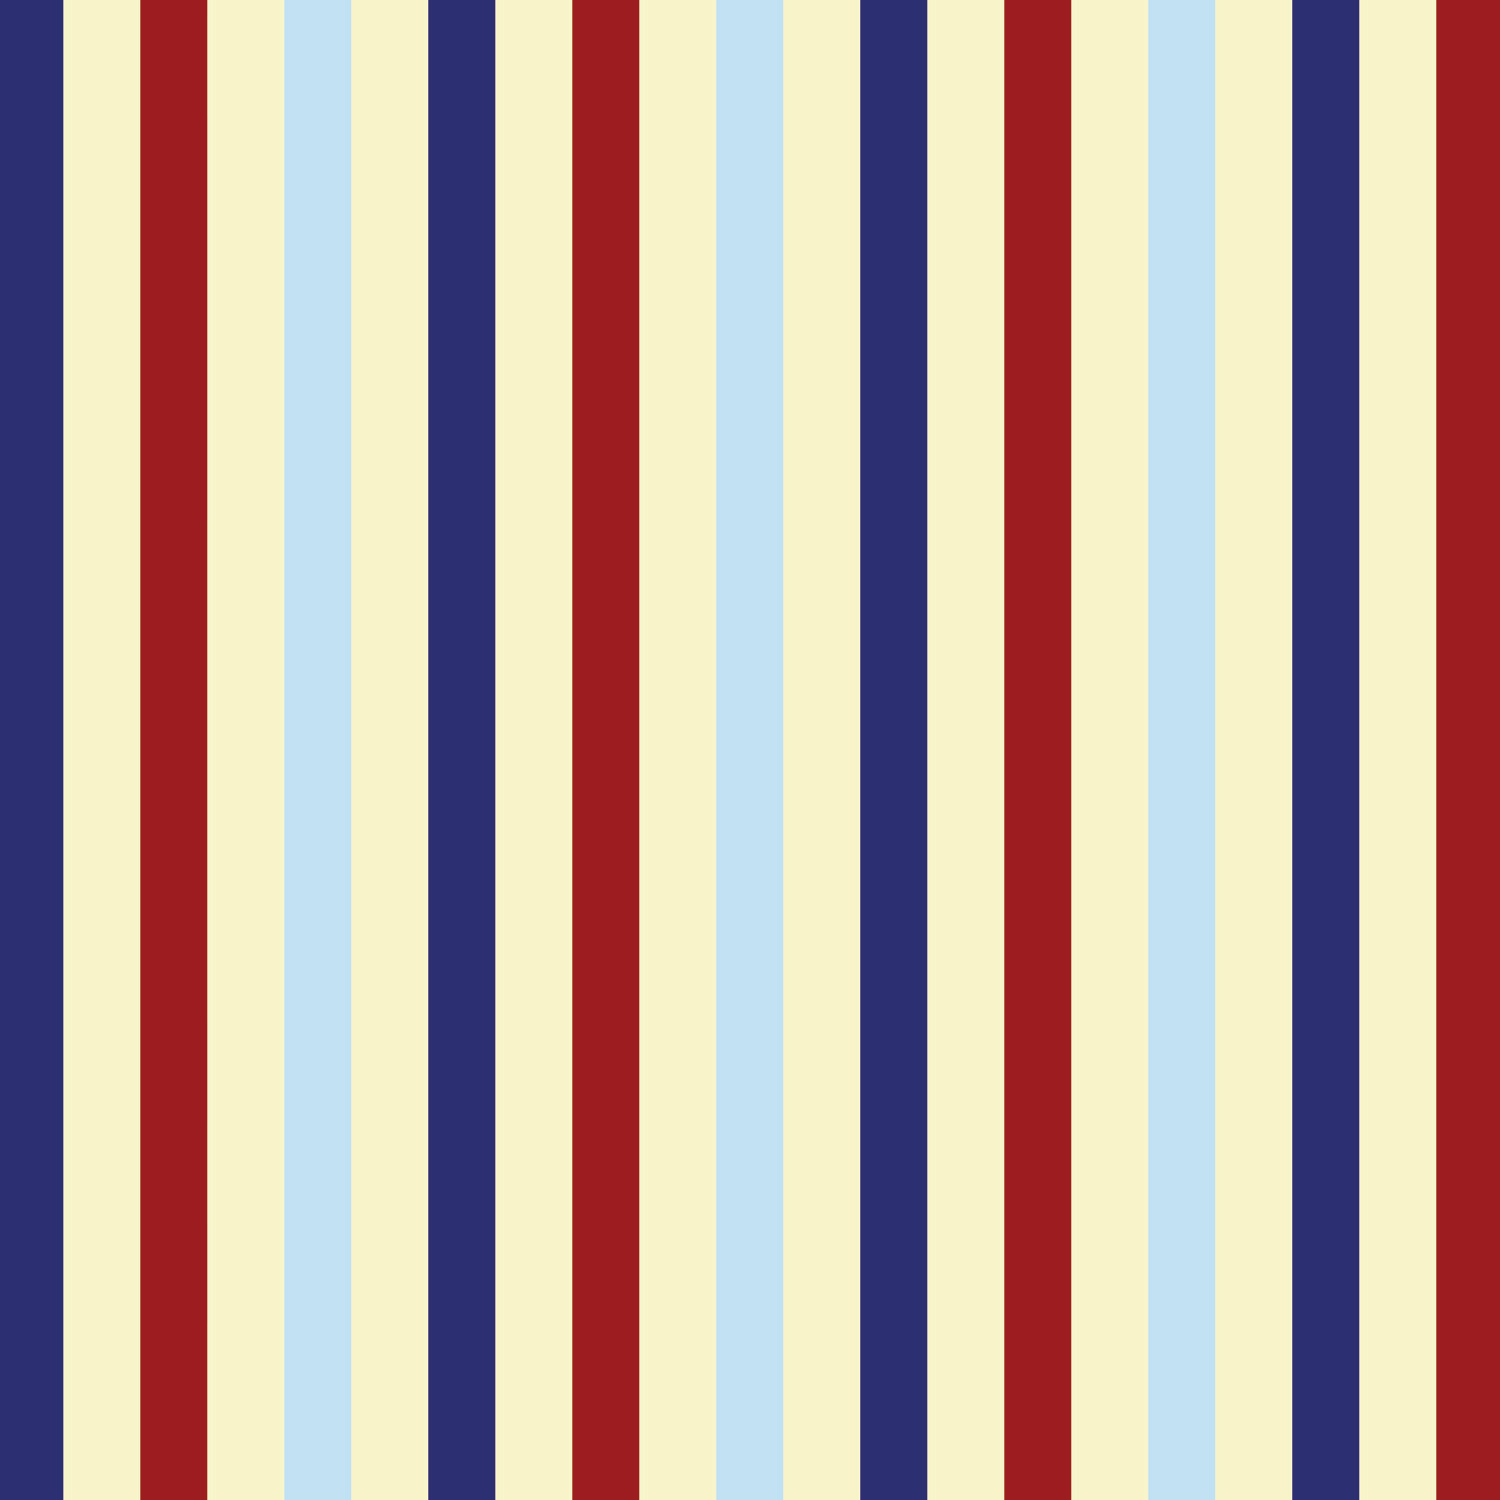 Vertical Striped Navy Blue Red And Beige Curtain Panels 150 Eloquent Innovations